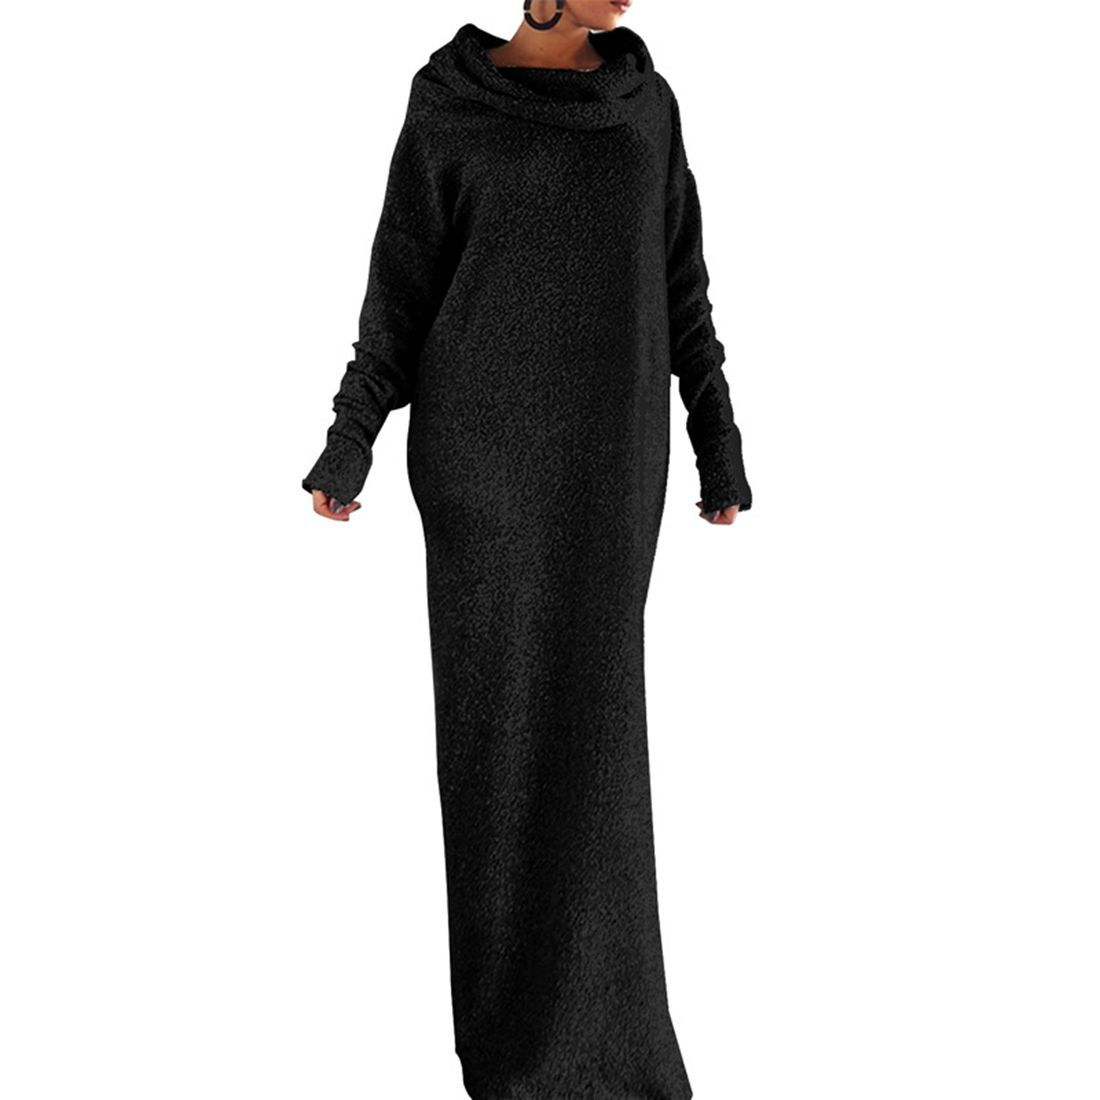 Ways original price us winter warm long evening party dress